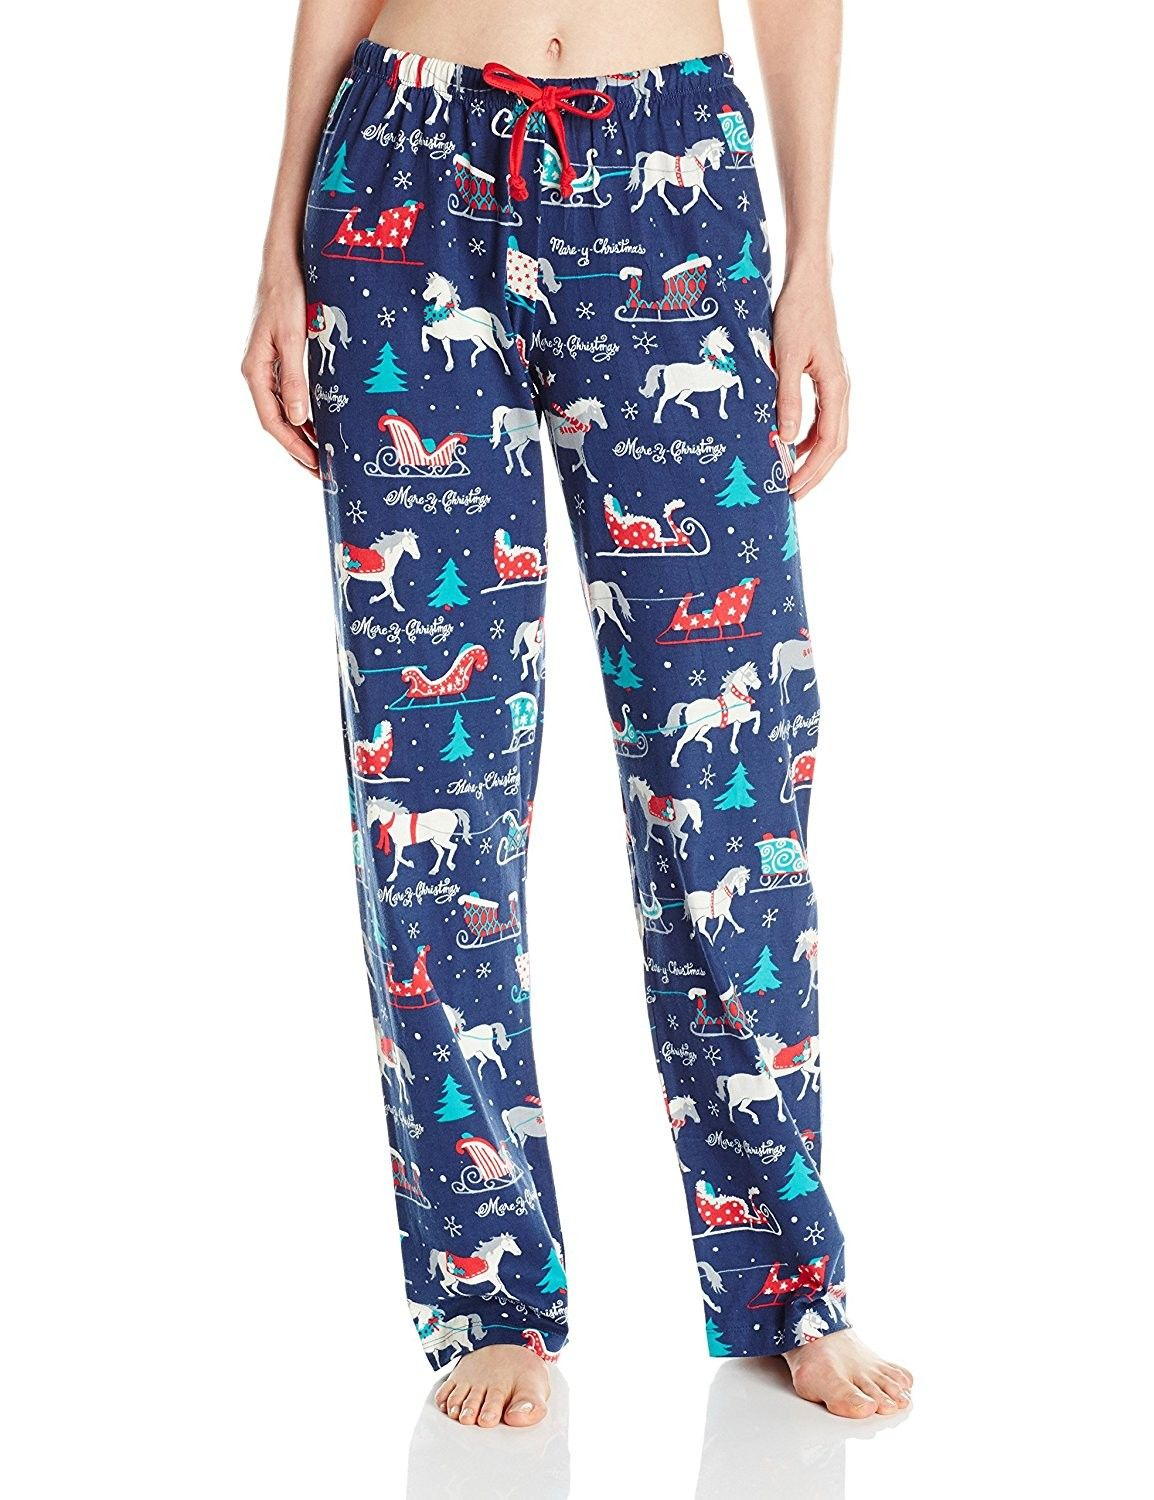 0765fe491a Women's Holiday Jersey Pajama Pants - Sledding Horses - C5125KXQ2PZ,Women's  Clothing, Lingerie, Sleep & Lounge, Sleep & Lounge, Bottoms #women  #clothing ...